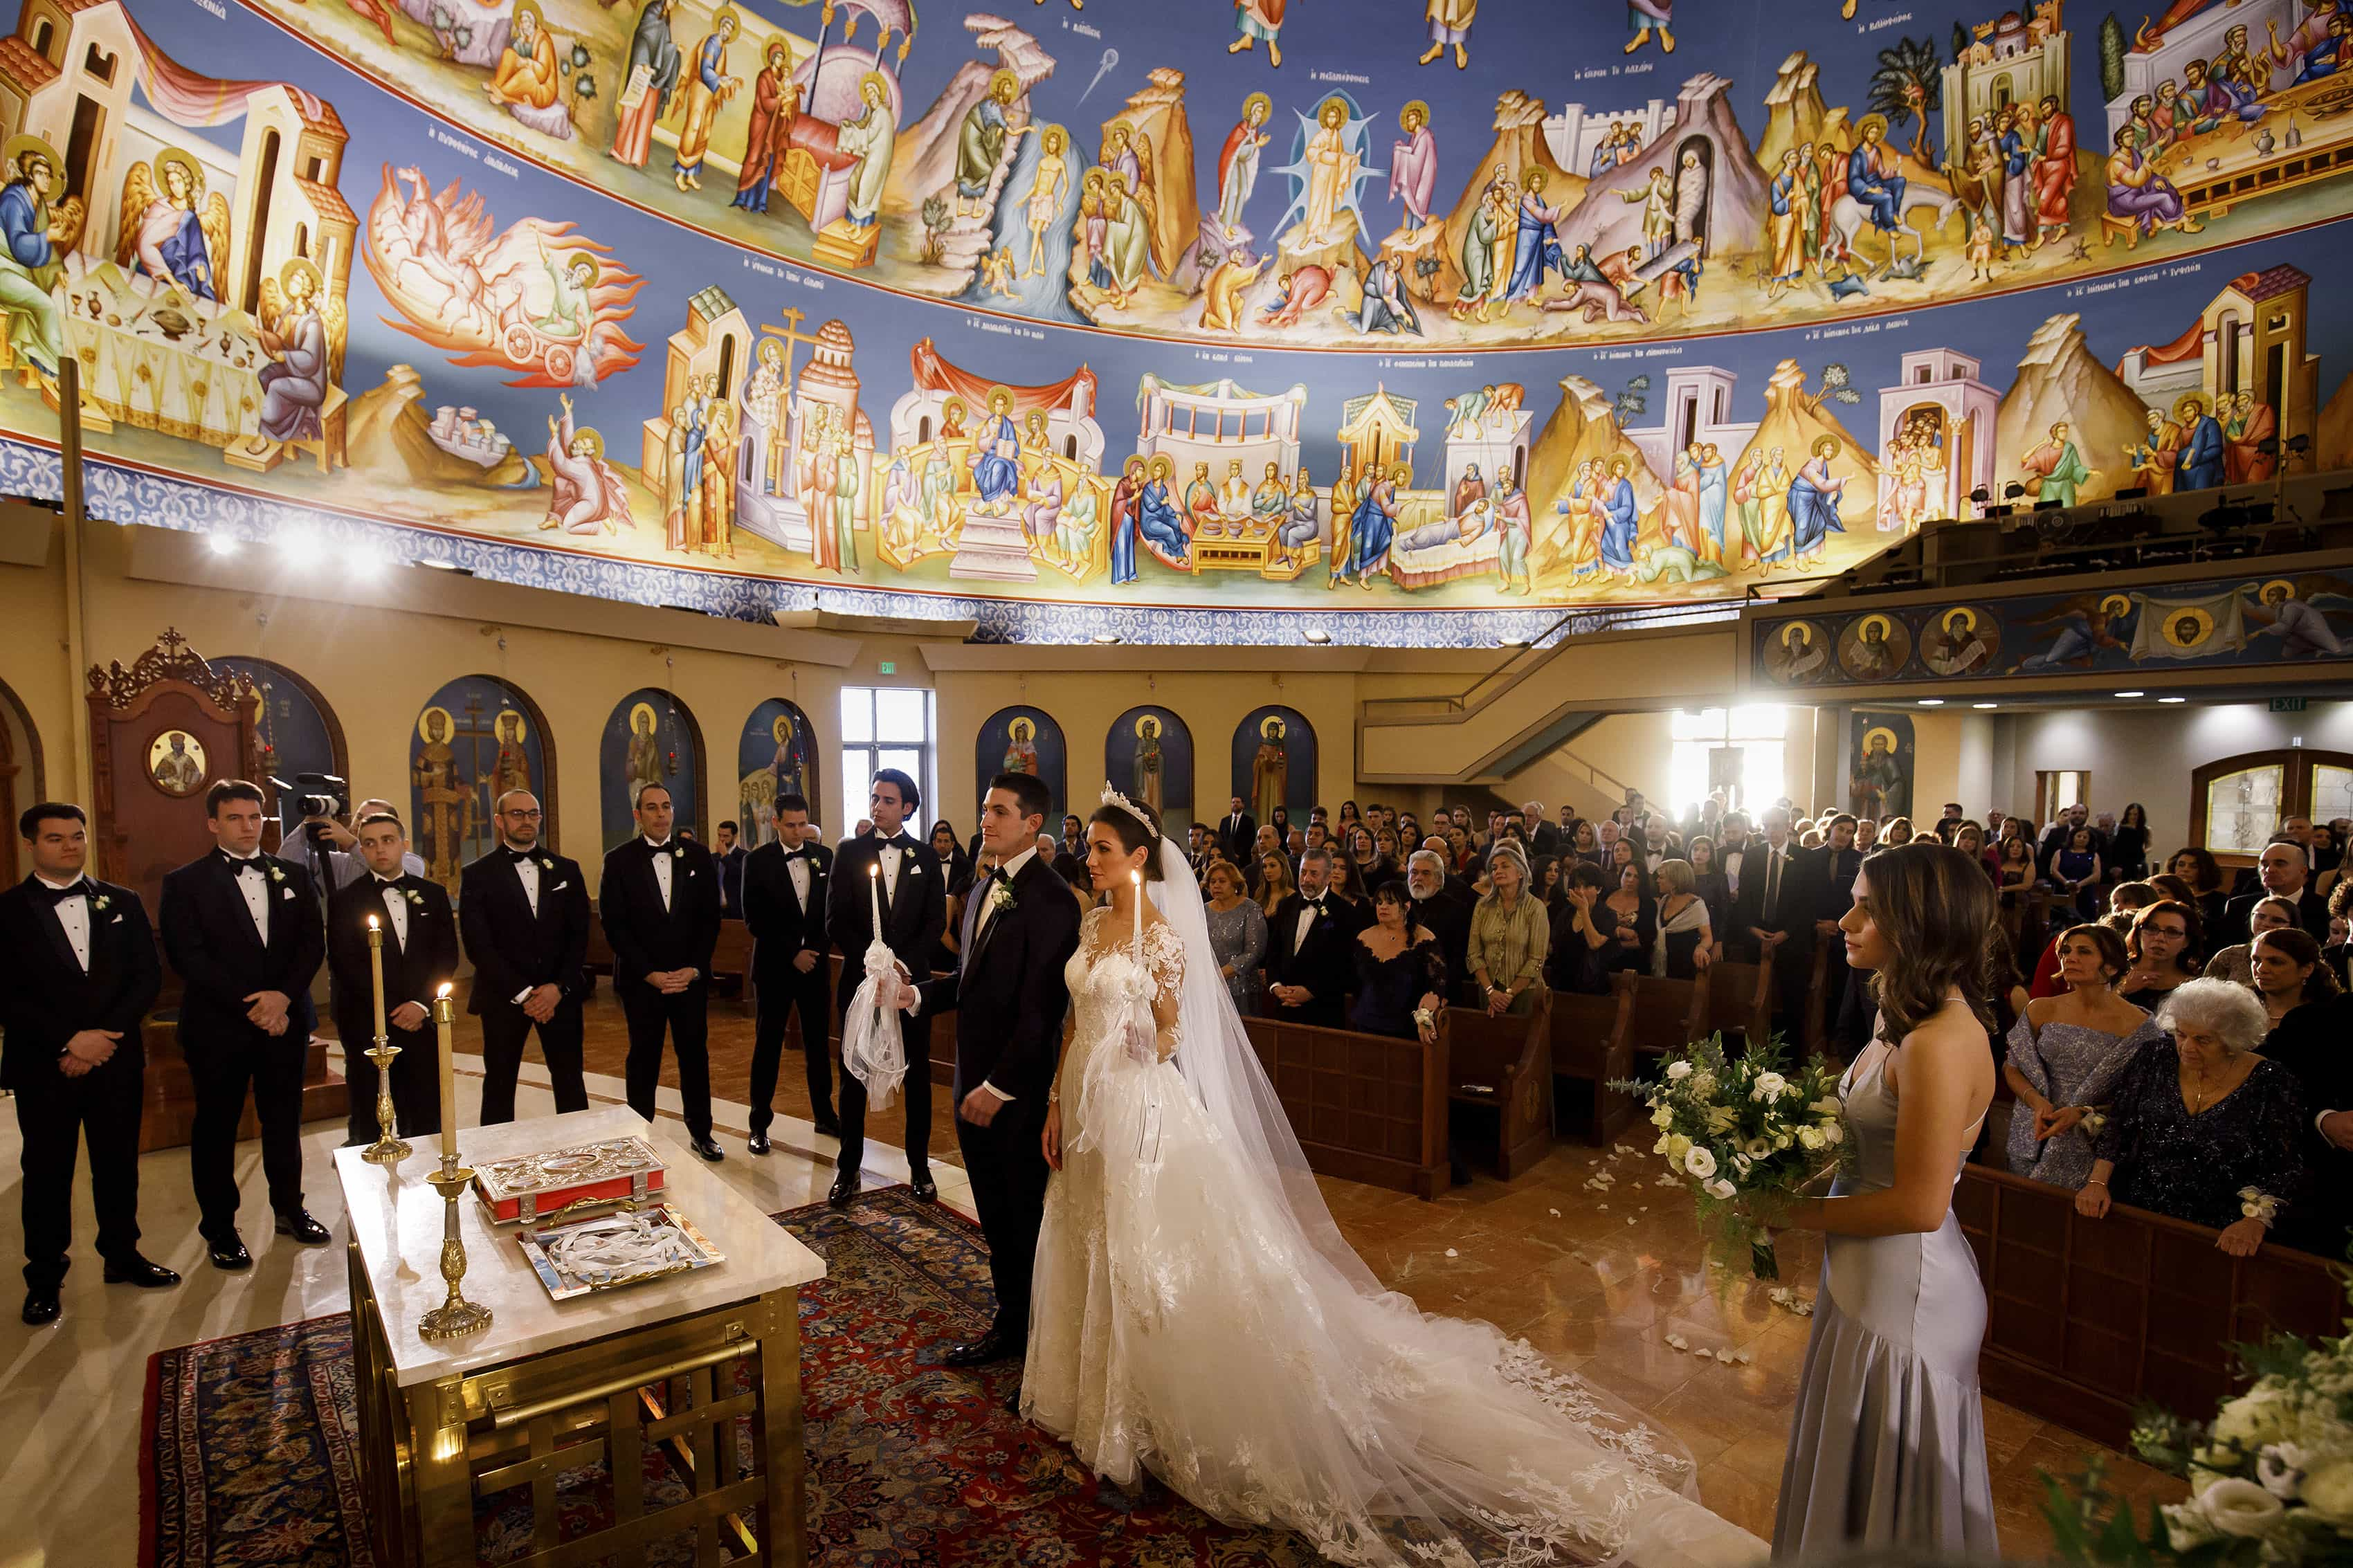 Ioanna and Alex's wedding ceremony inside the Assumption of the Theotokos Greek Orthodox Cathedral in Denver